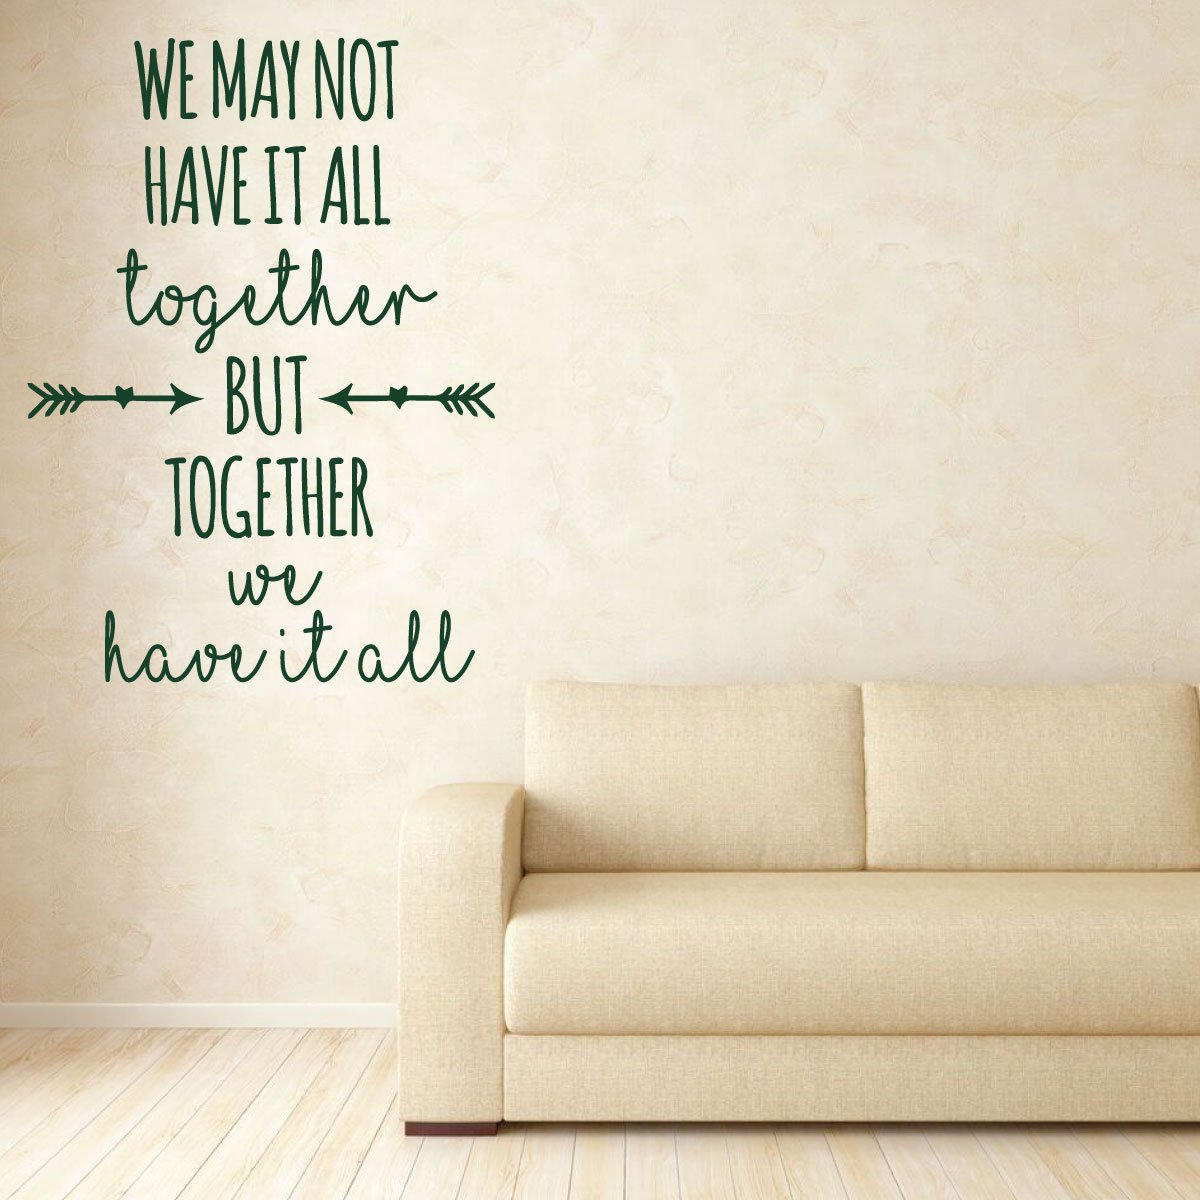 Wall Decals We Vinyl Decor Decal